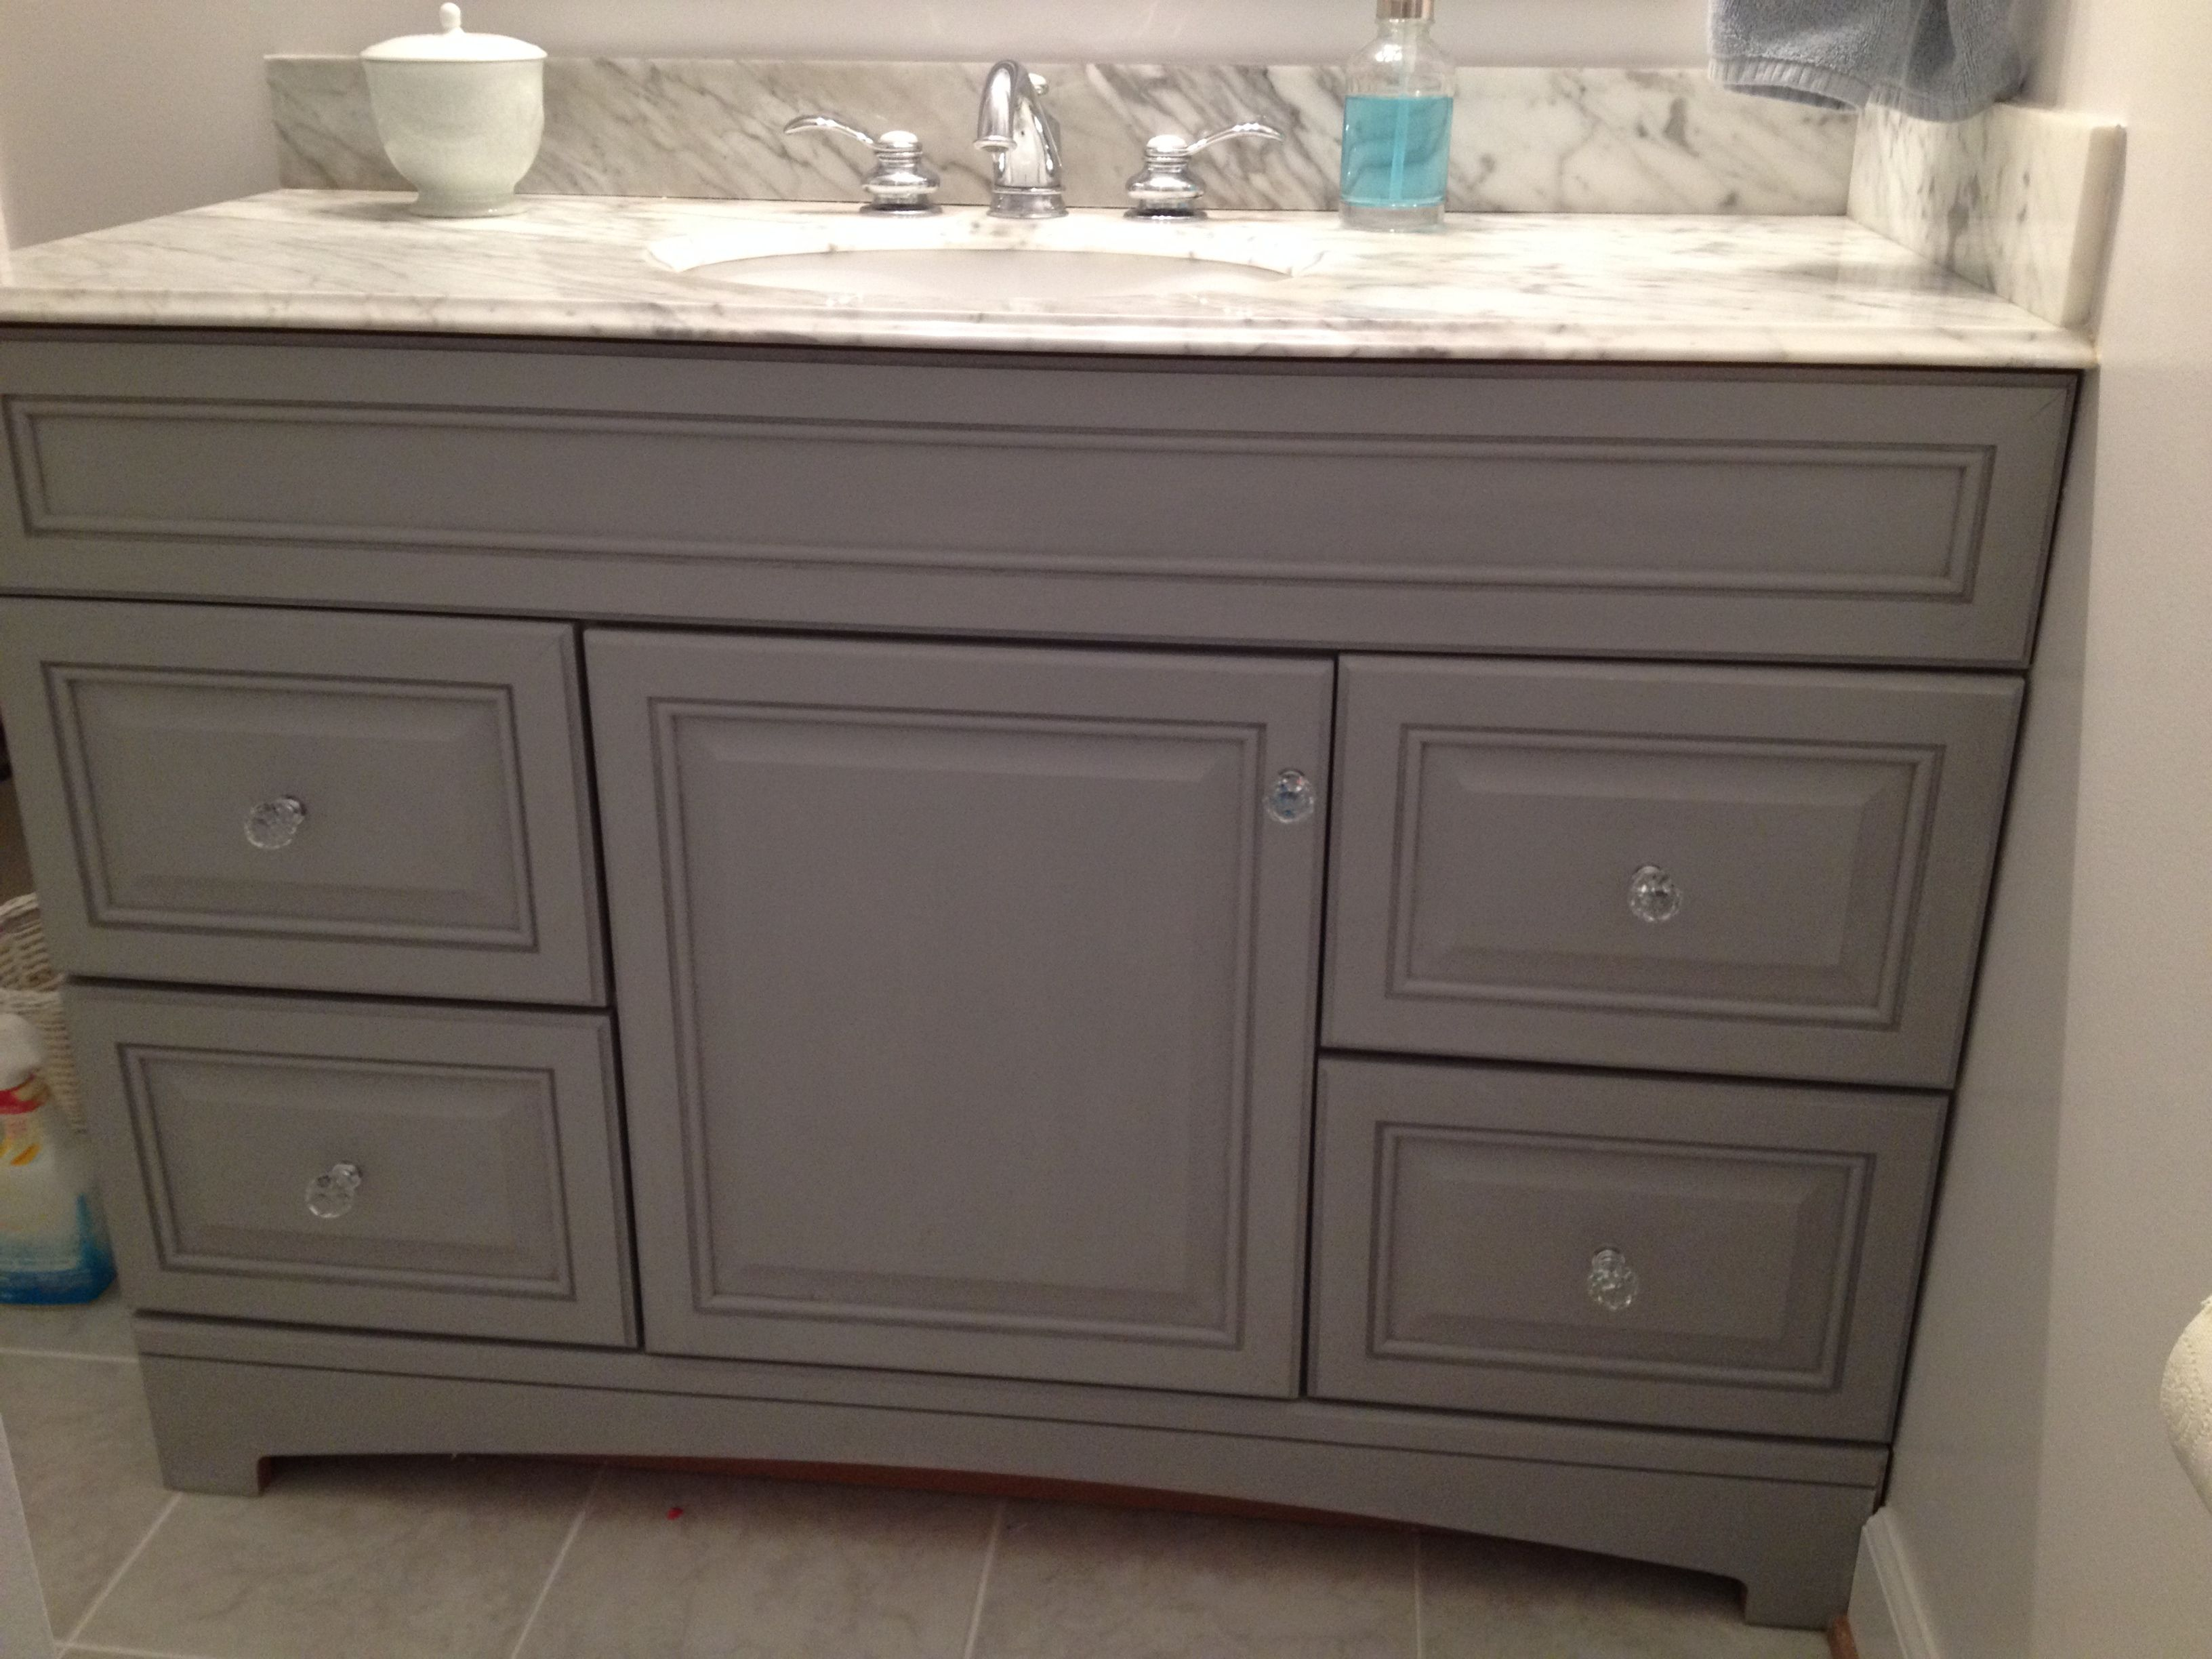 Annie sloan chalk paint bathroom cabinets - Updated Bathroom Vanity With Annie Sloan Paris Grey